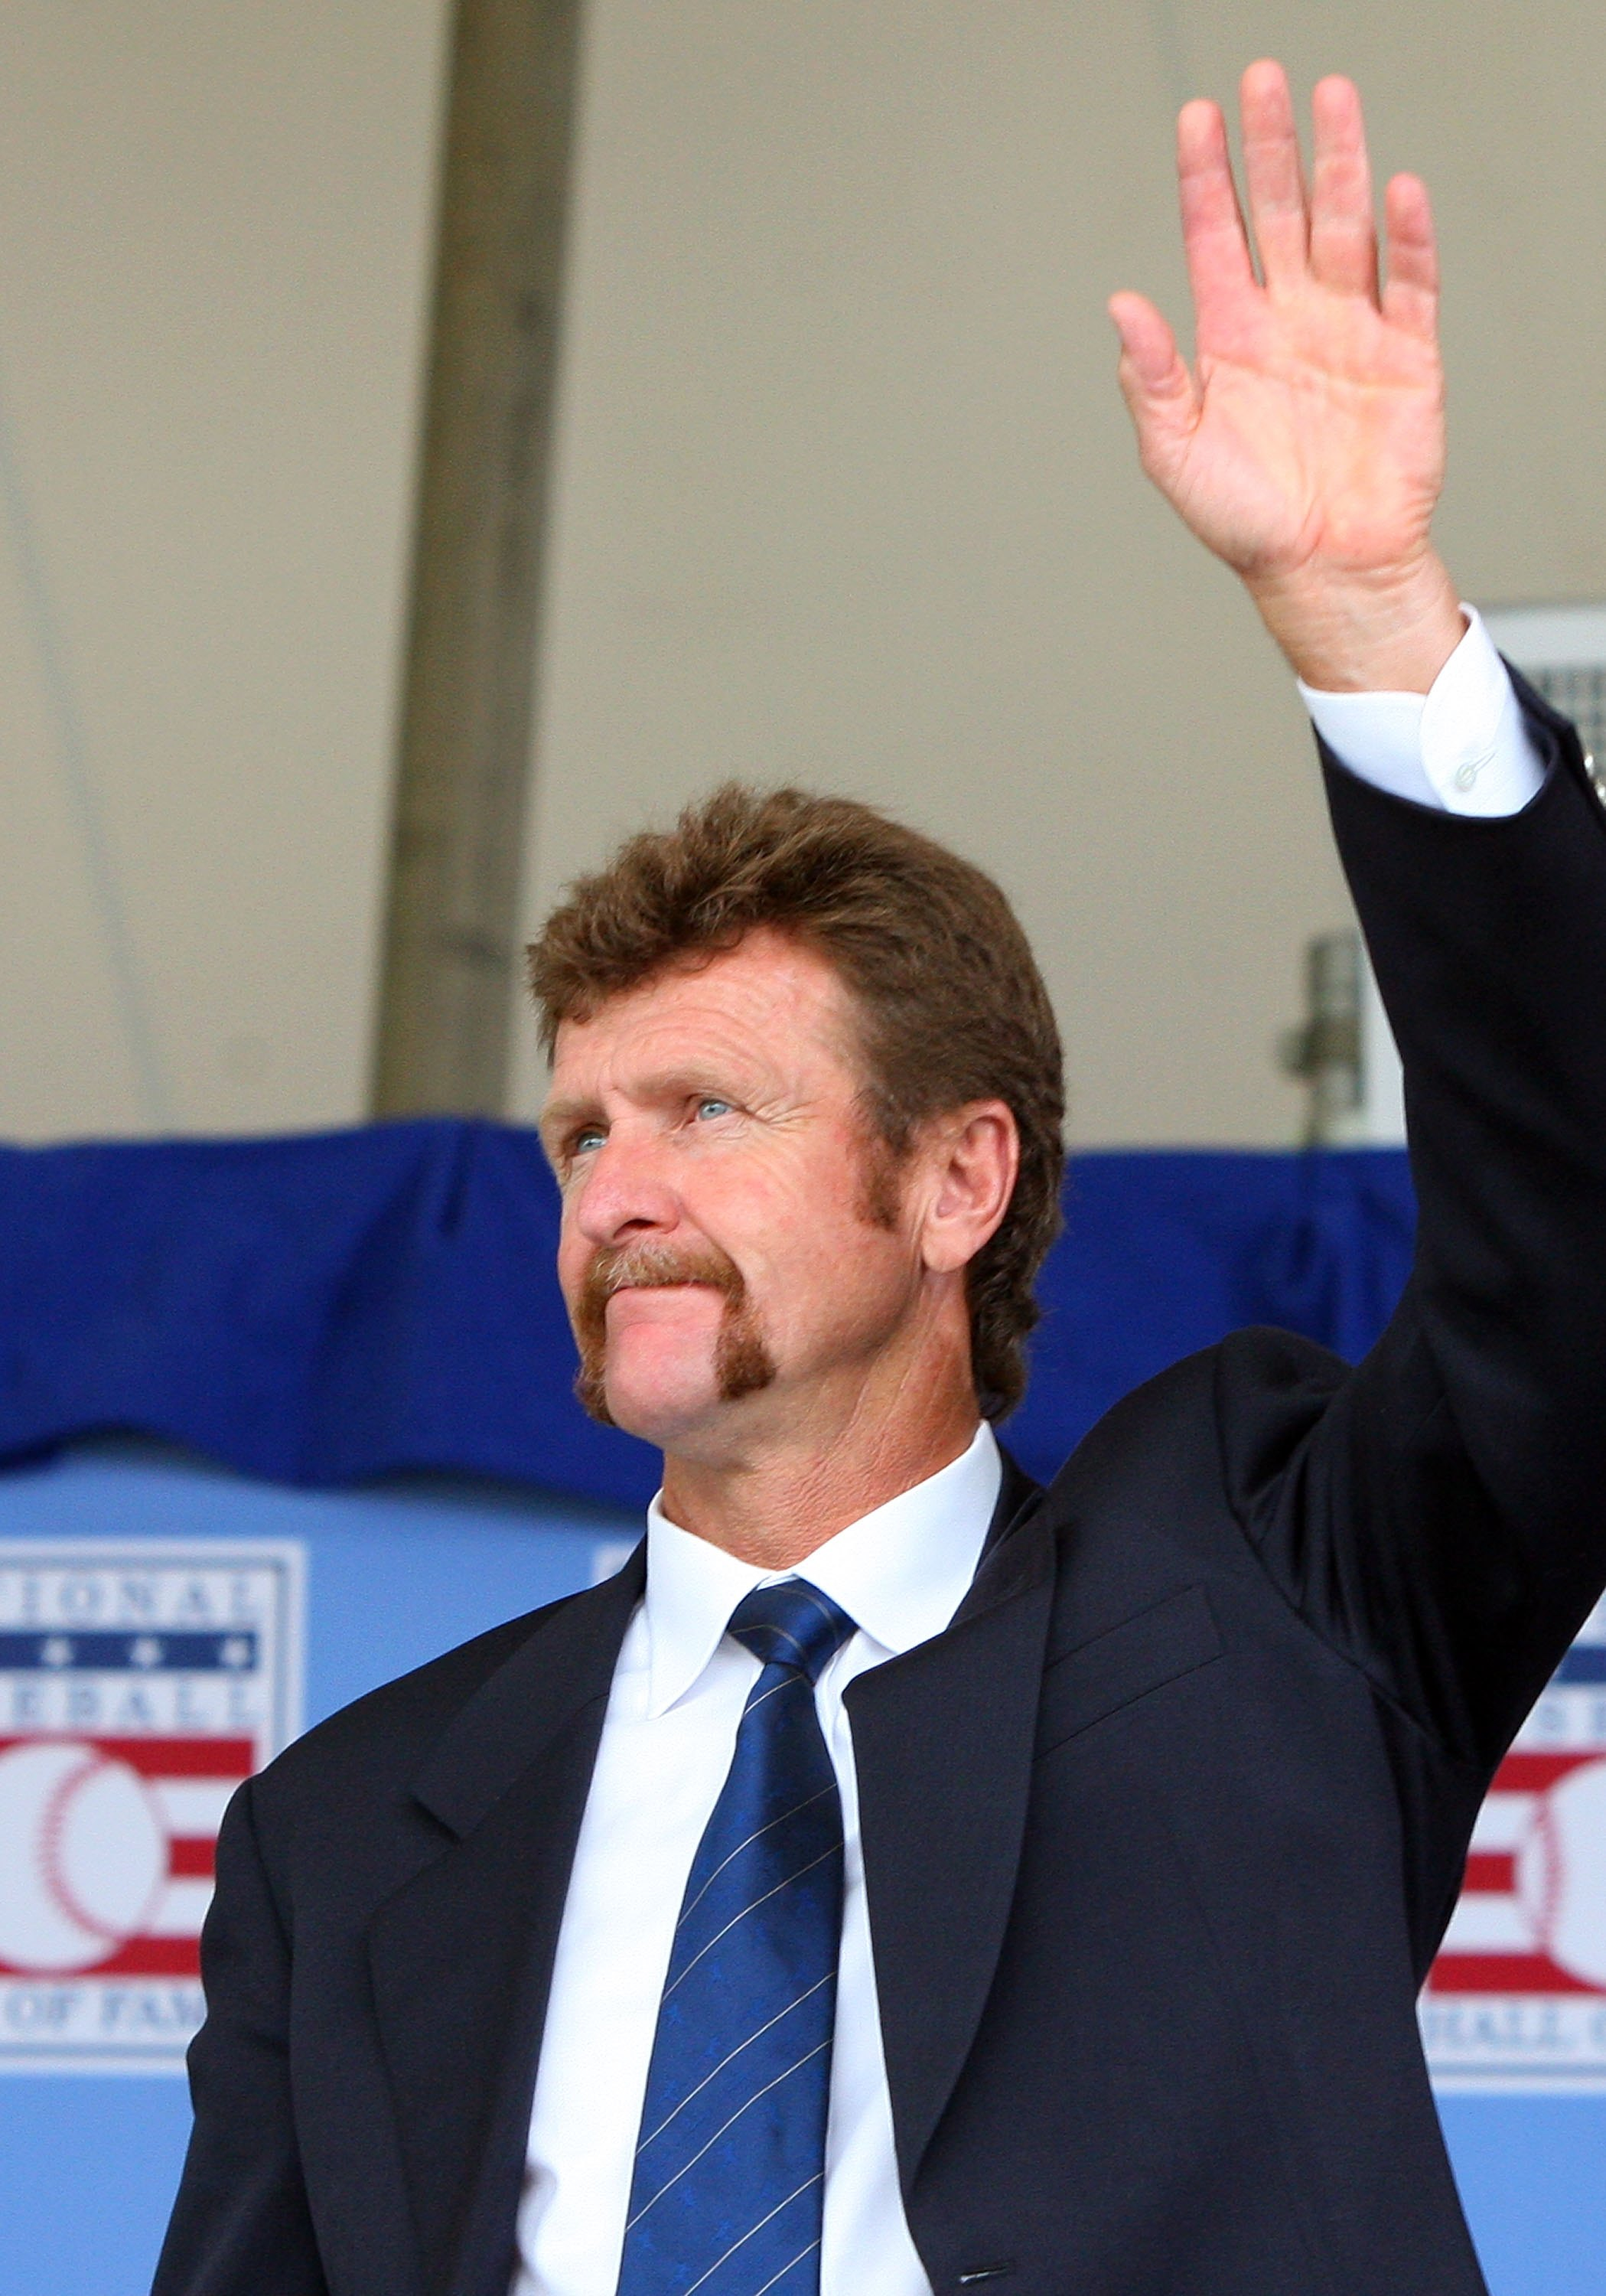 COOPERSTOWN, NY - JULY 26:  Hall of Famer Robin Yount waves to the crowd as he is introduced at Clark Sports Center during the 2009  Baseball Hall of Fame induction ceremony on July 26, 2009 in Cooperstown, New York.  (Photo by Jim McIsaac/Getty Images)